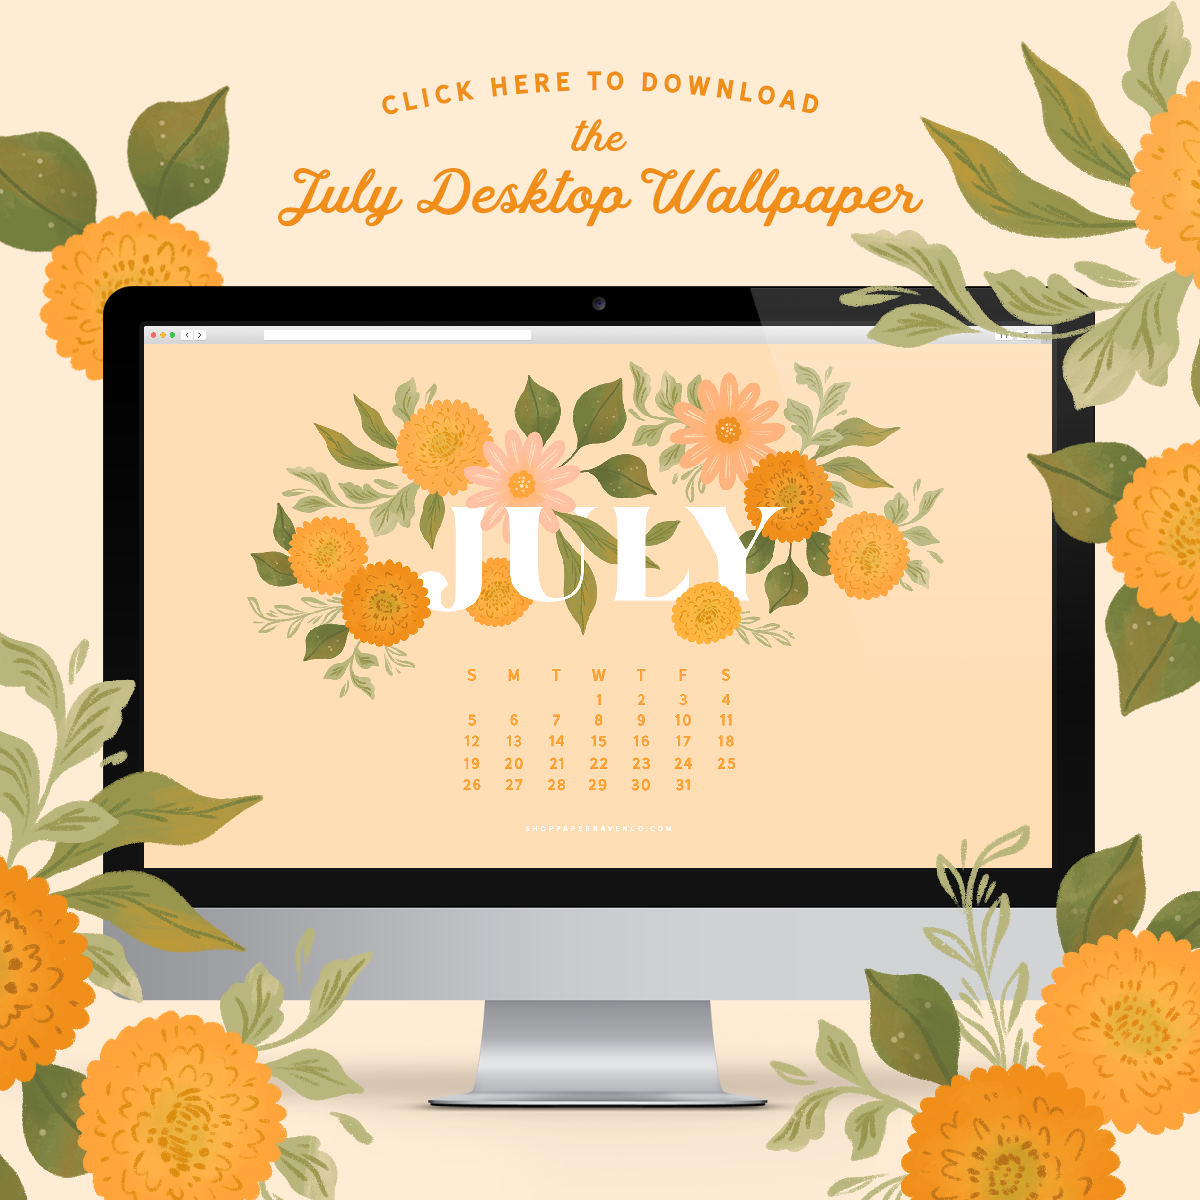 July 2020 Illustrated Desktop Wallpaper by Paper Raven Co. #dressyourtech #desktopwallpaper #desktopdownload